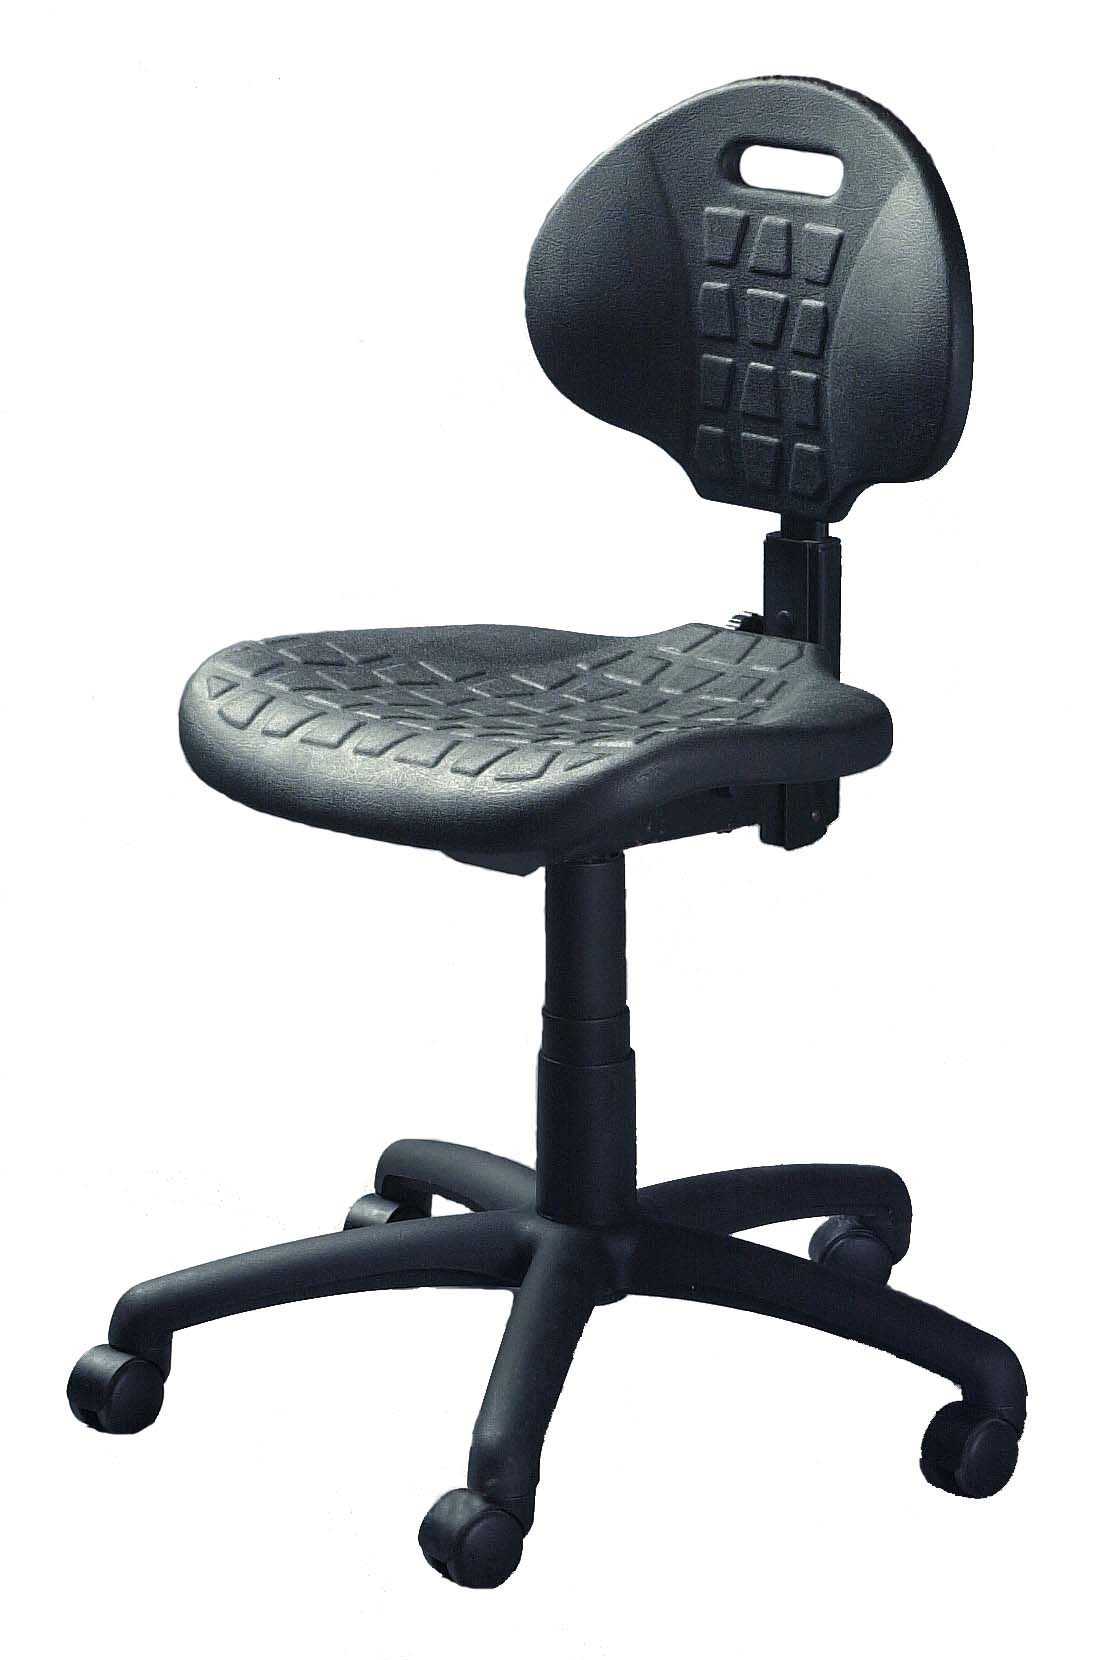 Workout Quot Lab Shop Quot Chair Champion Seatingchampion Seating